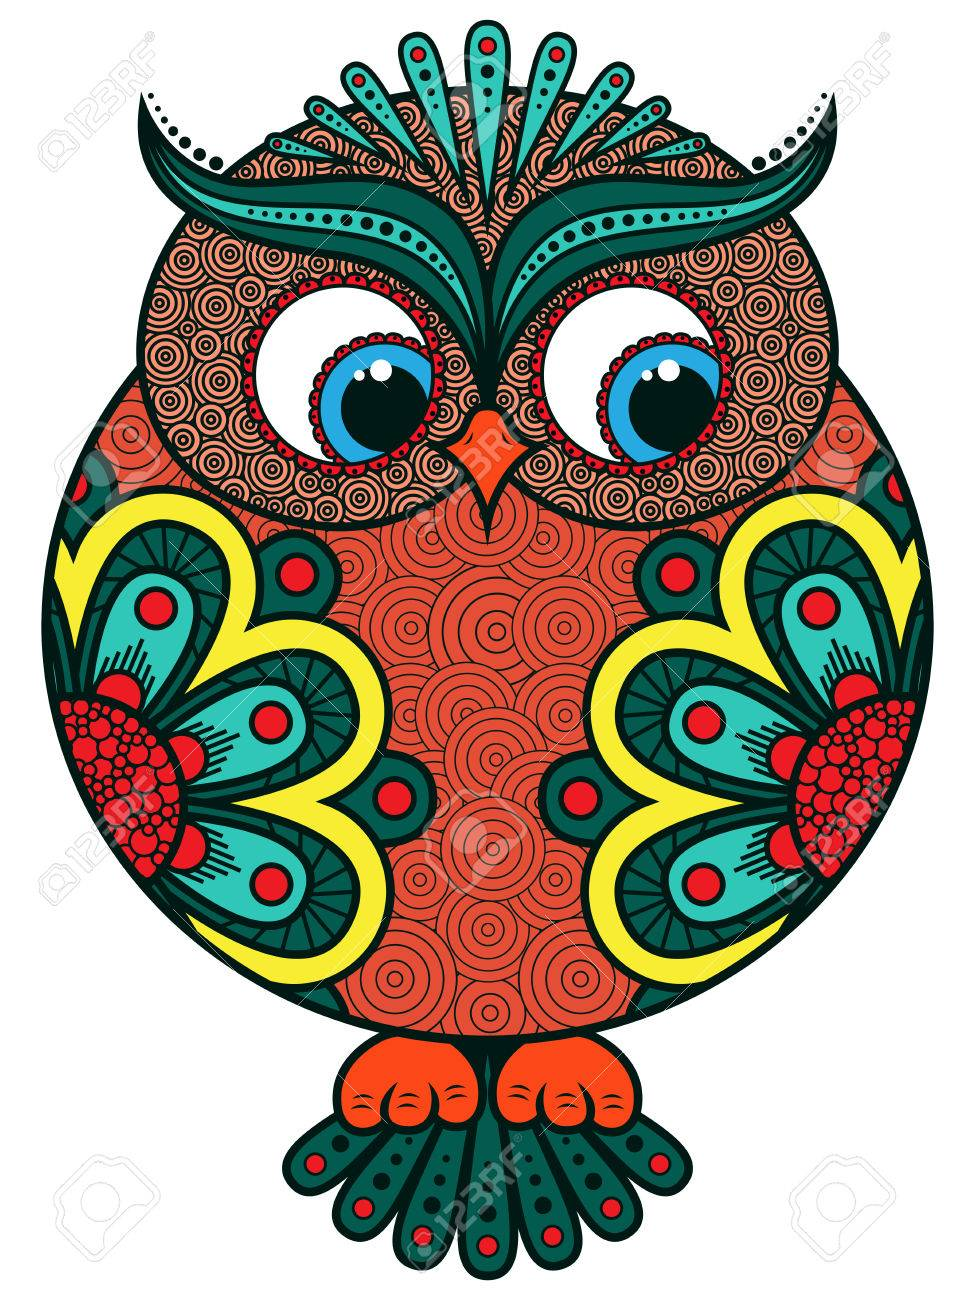 big stylized colourful ornate funny rounded owl vector artwork rh 123rf com great horned owl vector art great horned owl vector art